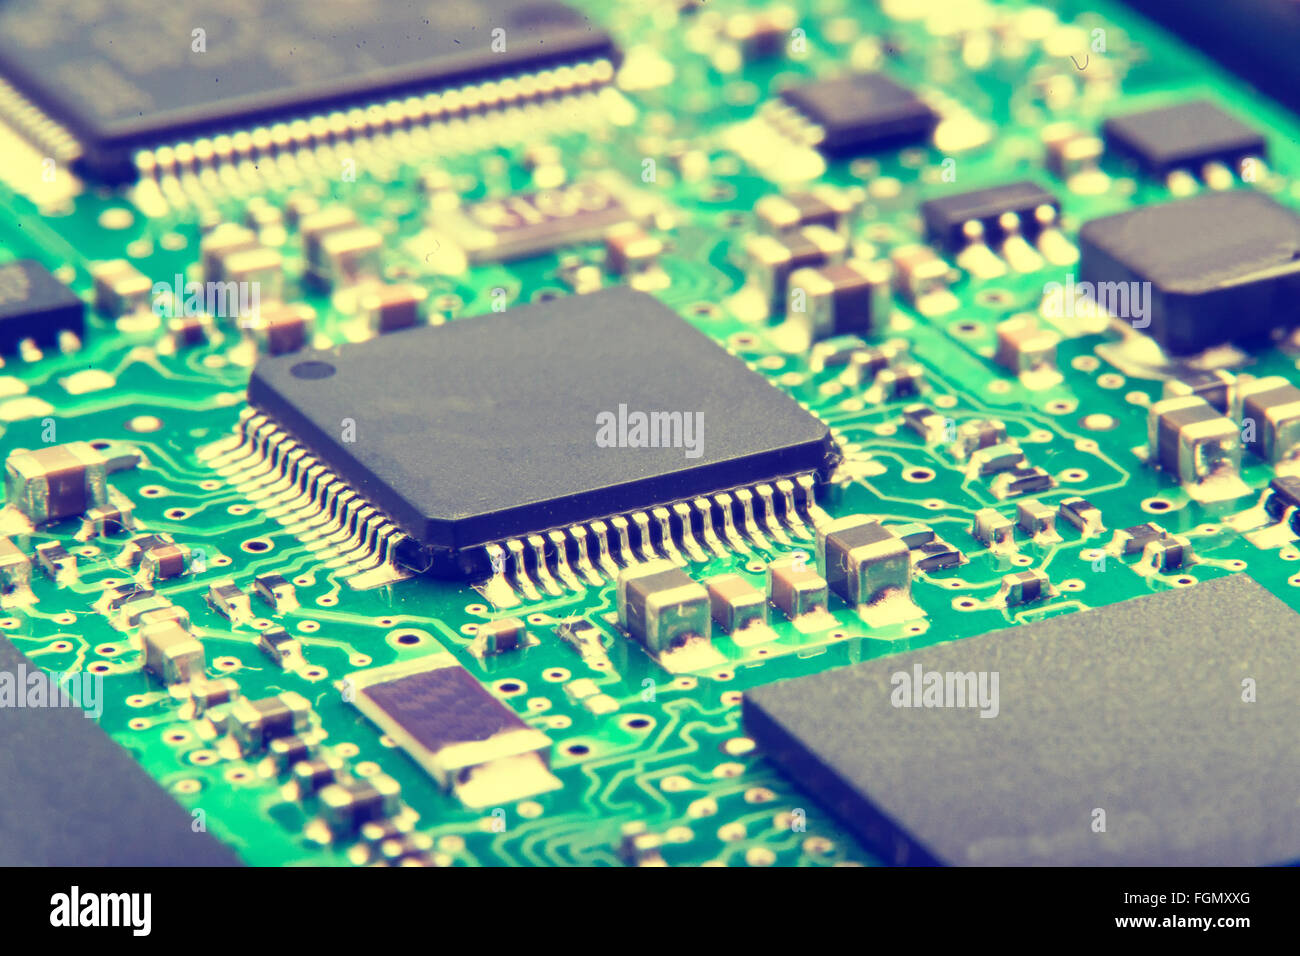 Electronic circuit board close up. Green PCB - Stock Image